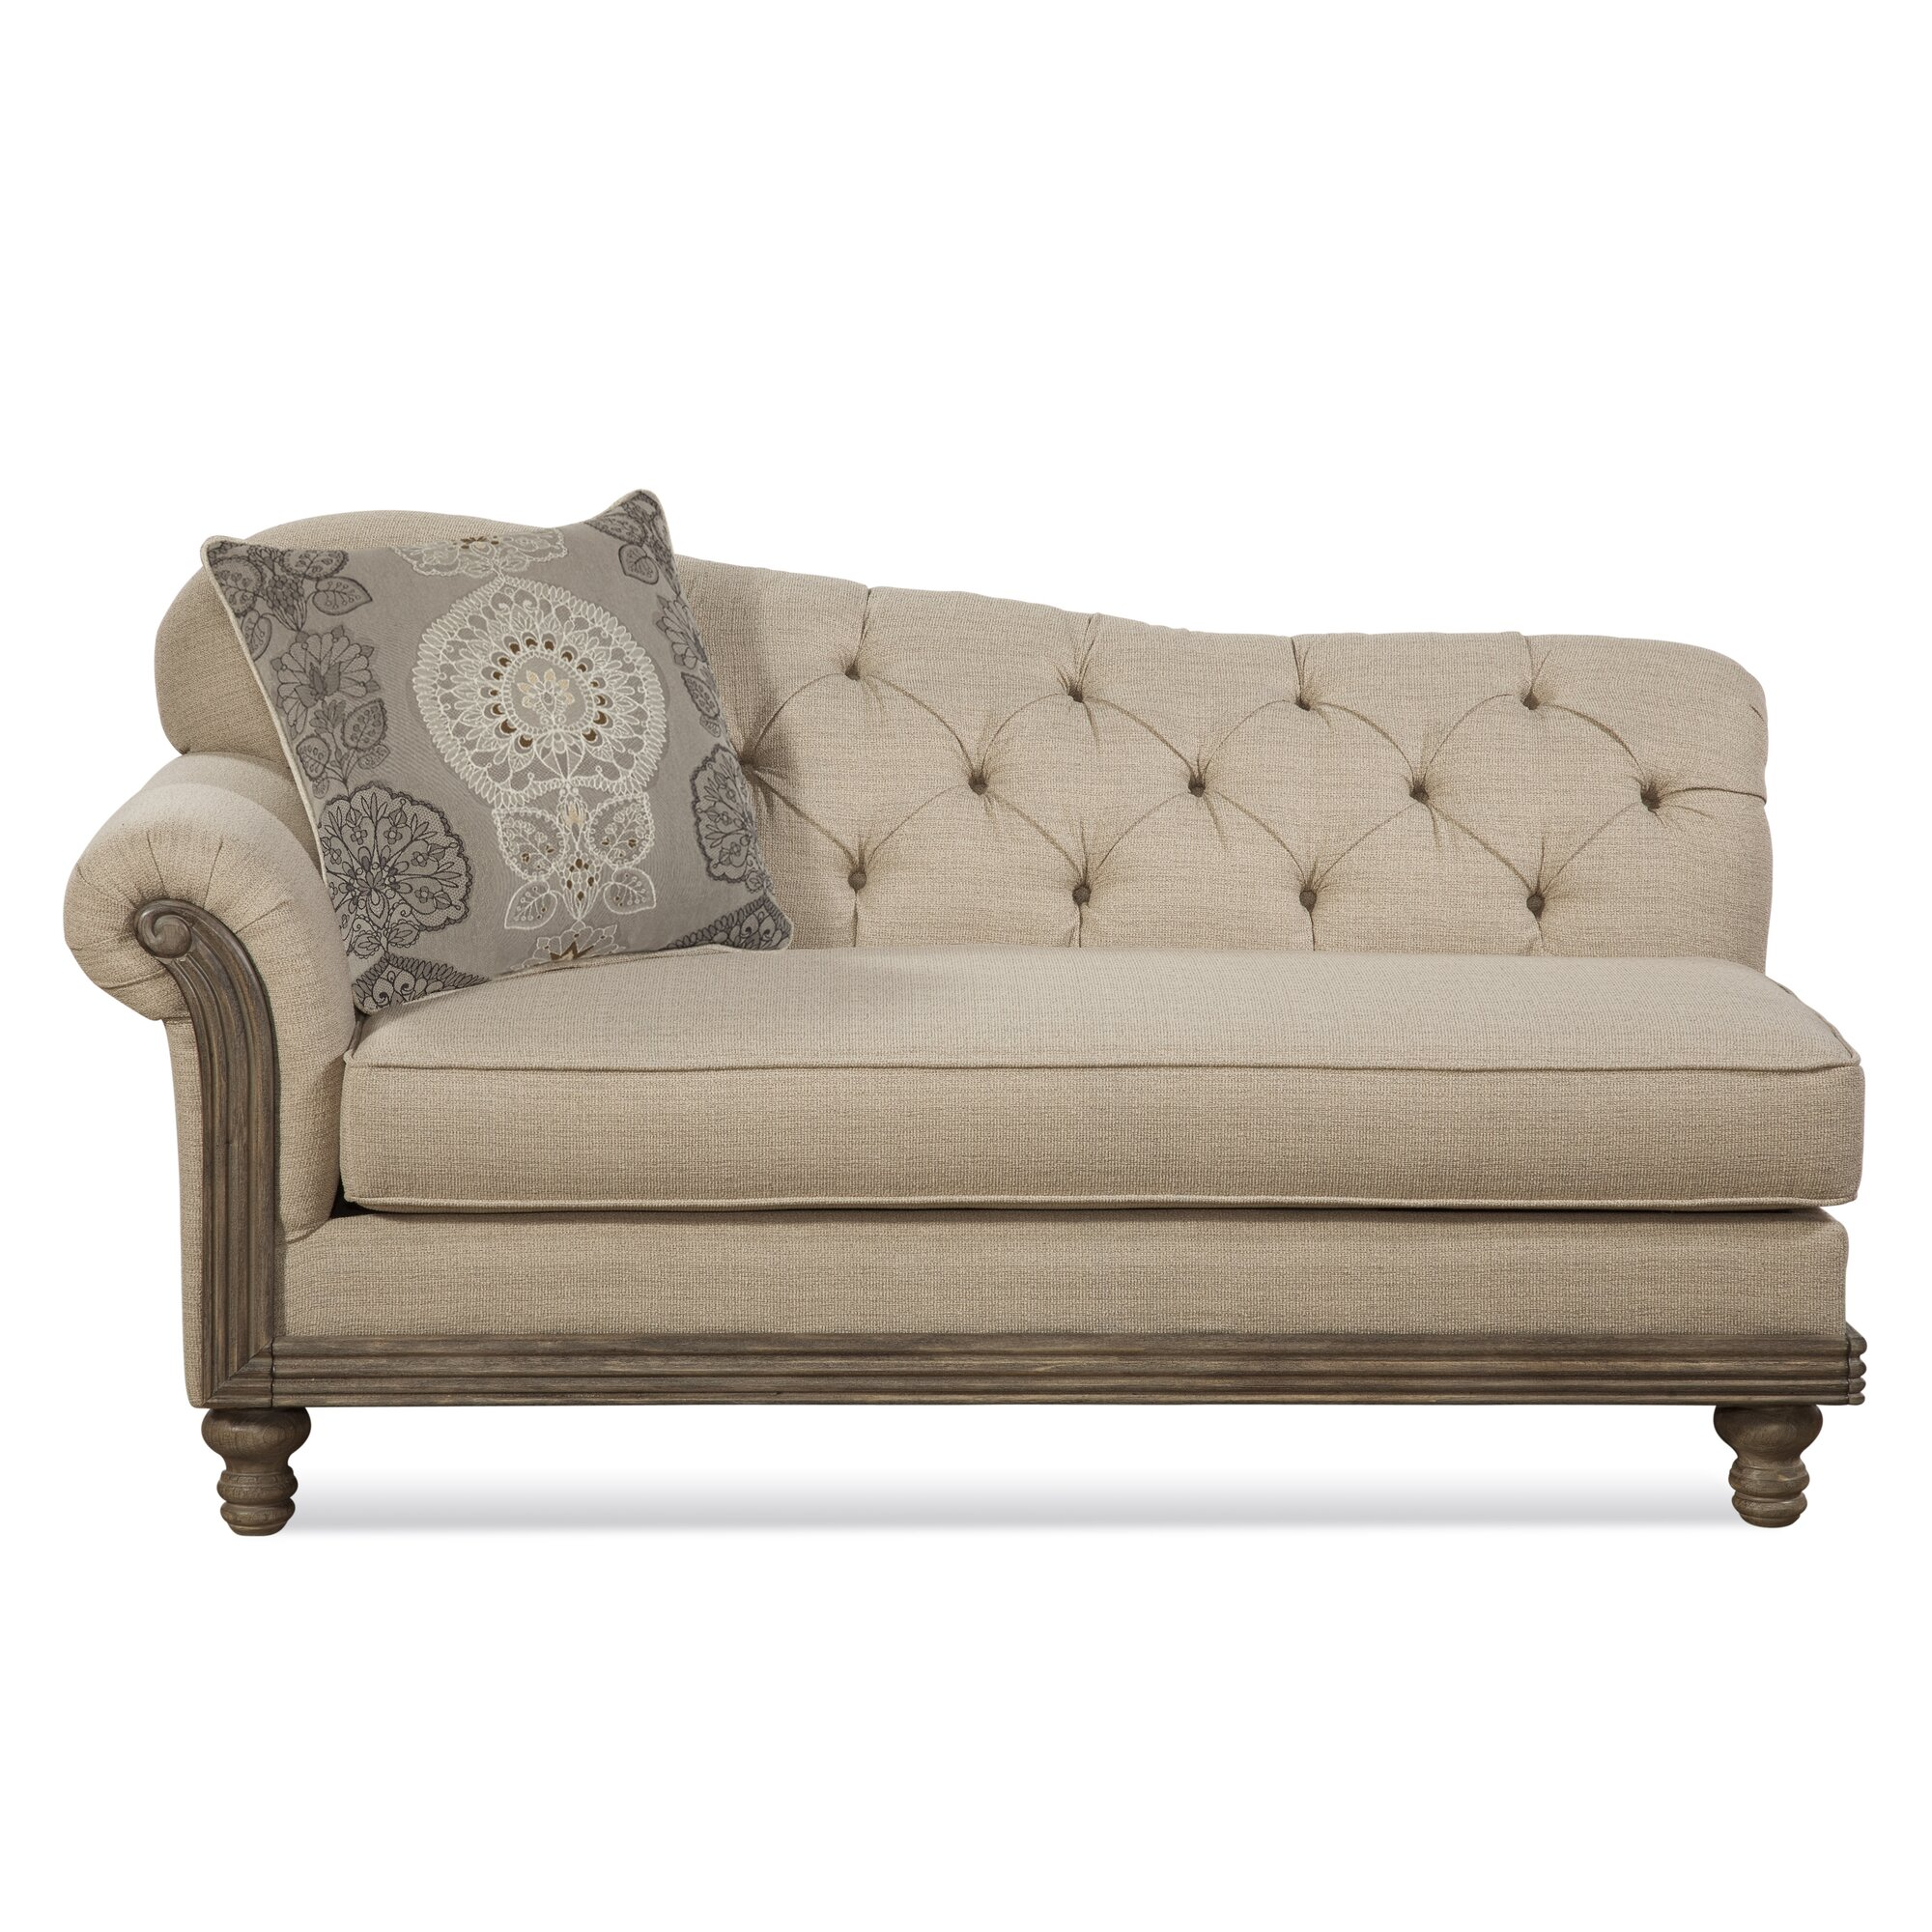 Bungalow Rose Roosa Living Room Collection Reviews